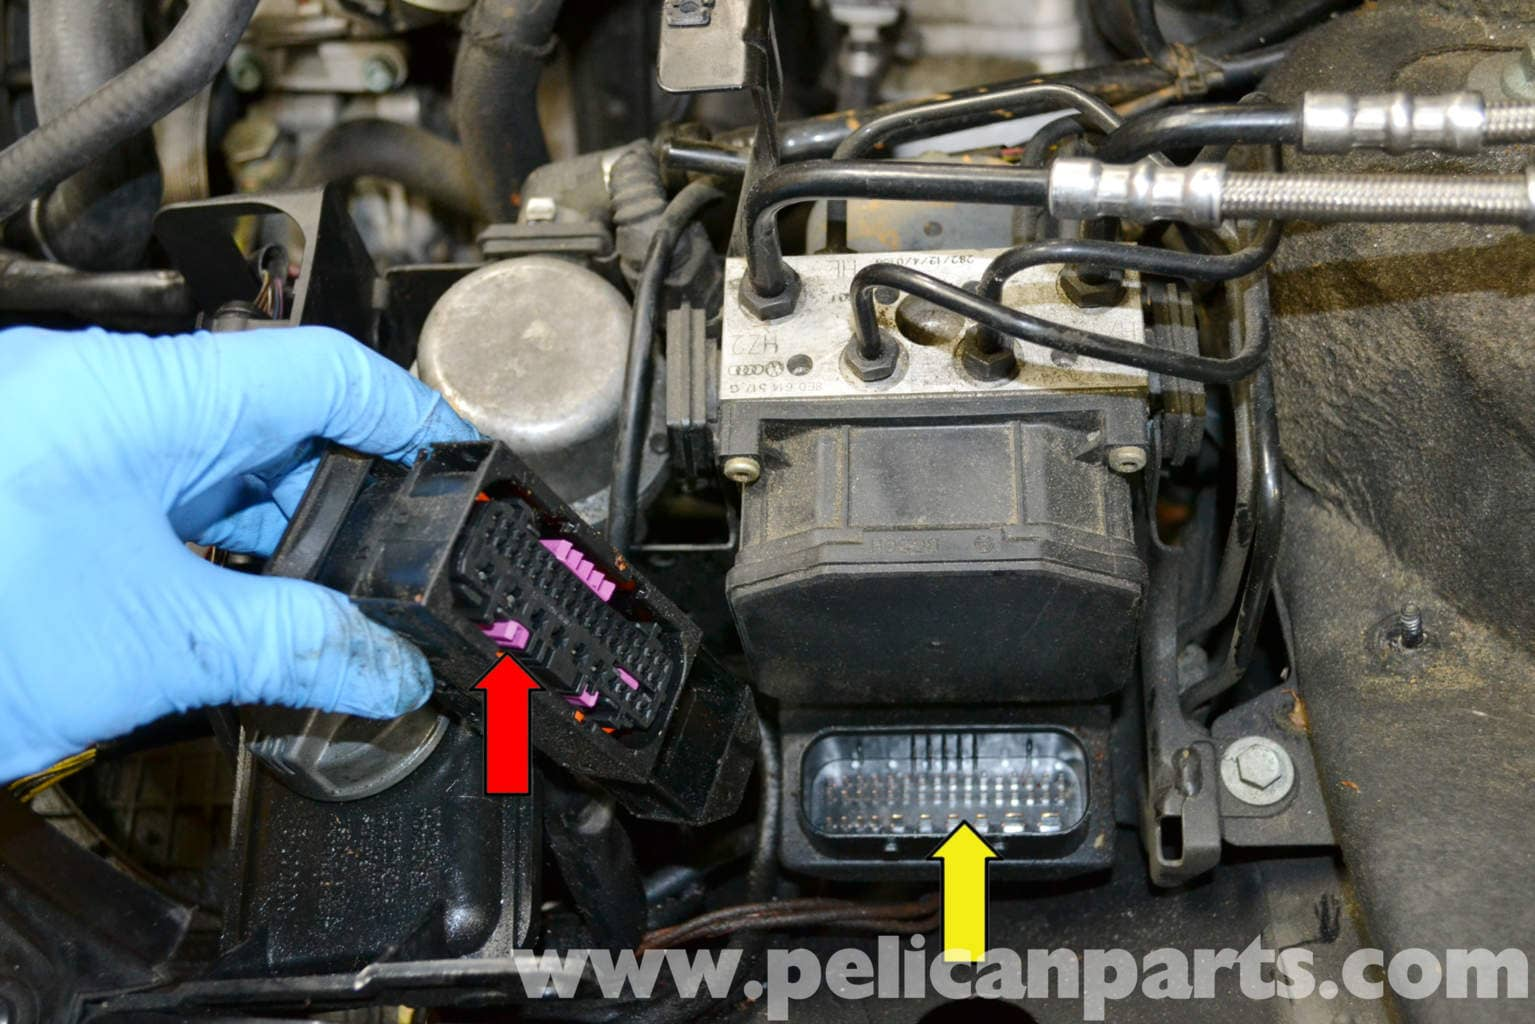 Audi A4 B6 Abs Control Module Replacement 2002 2008 Pelican Parts Diy Maintenance Article